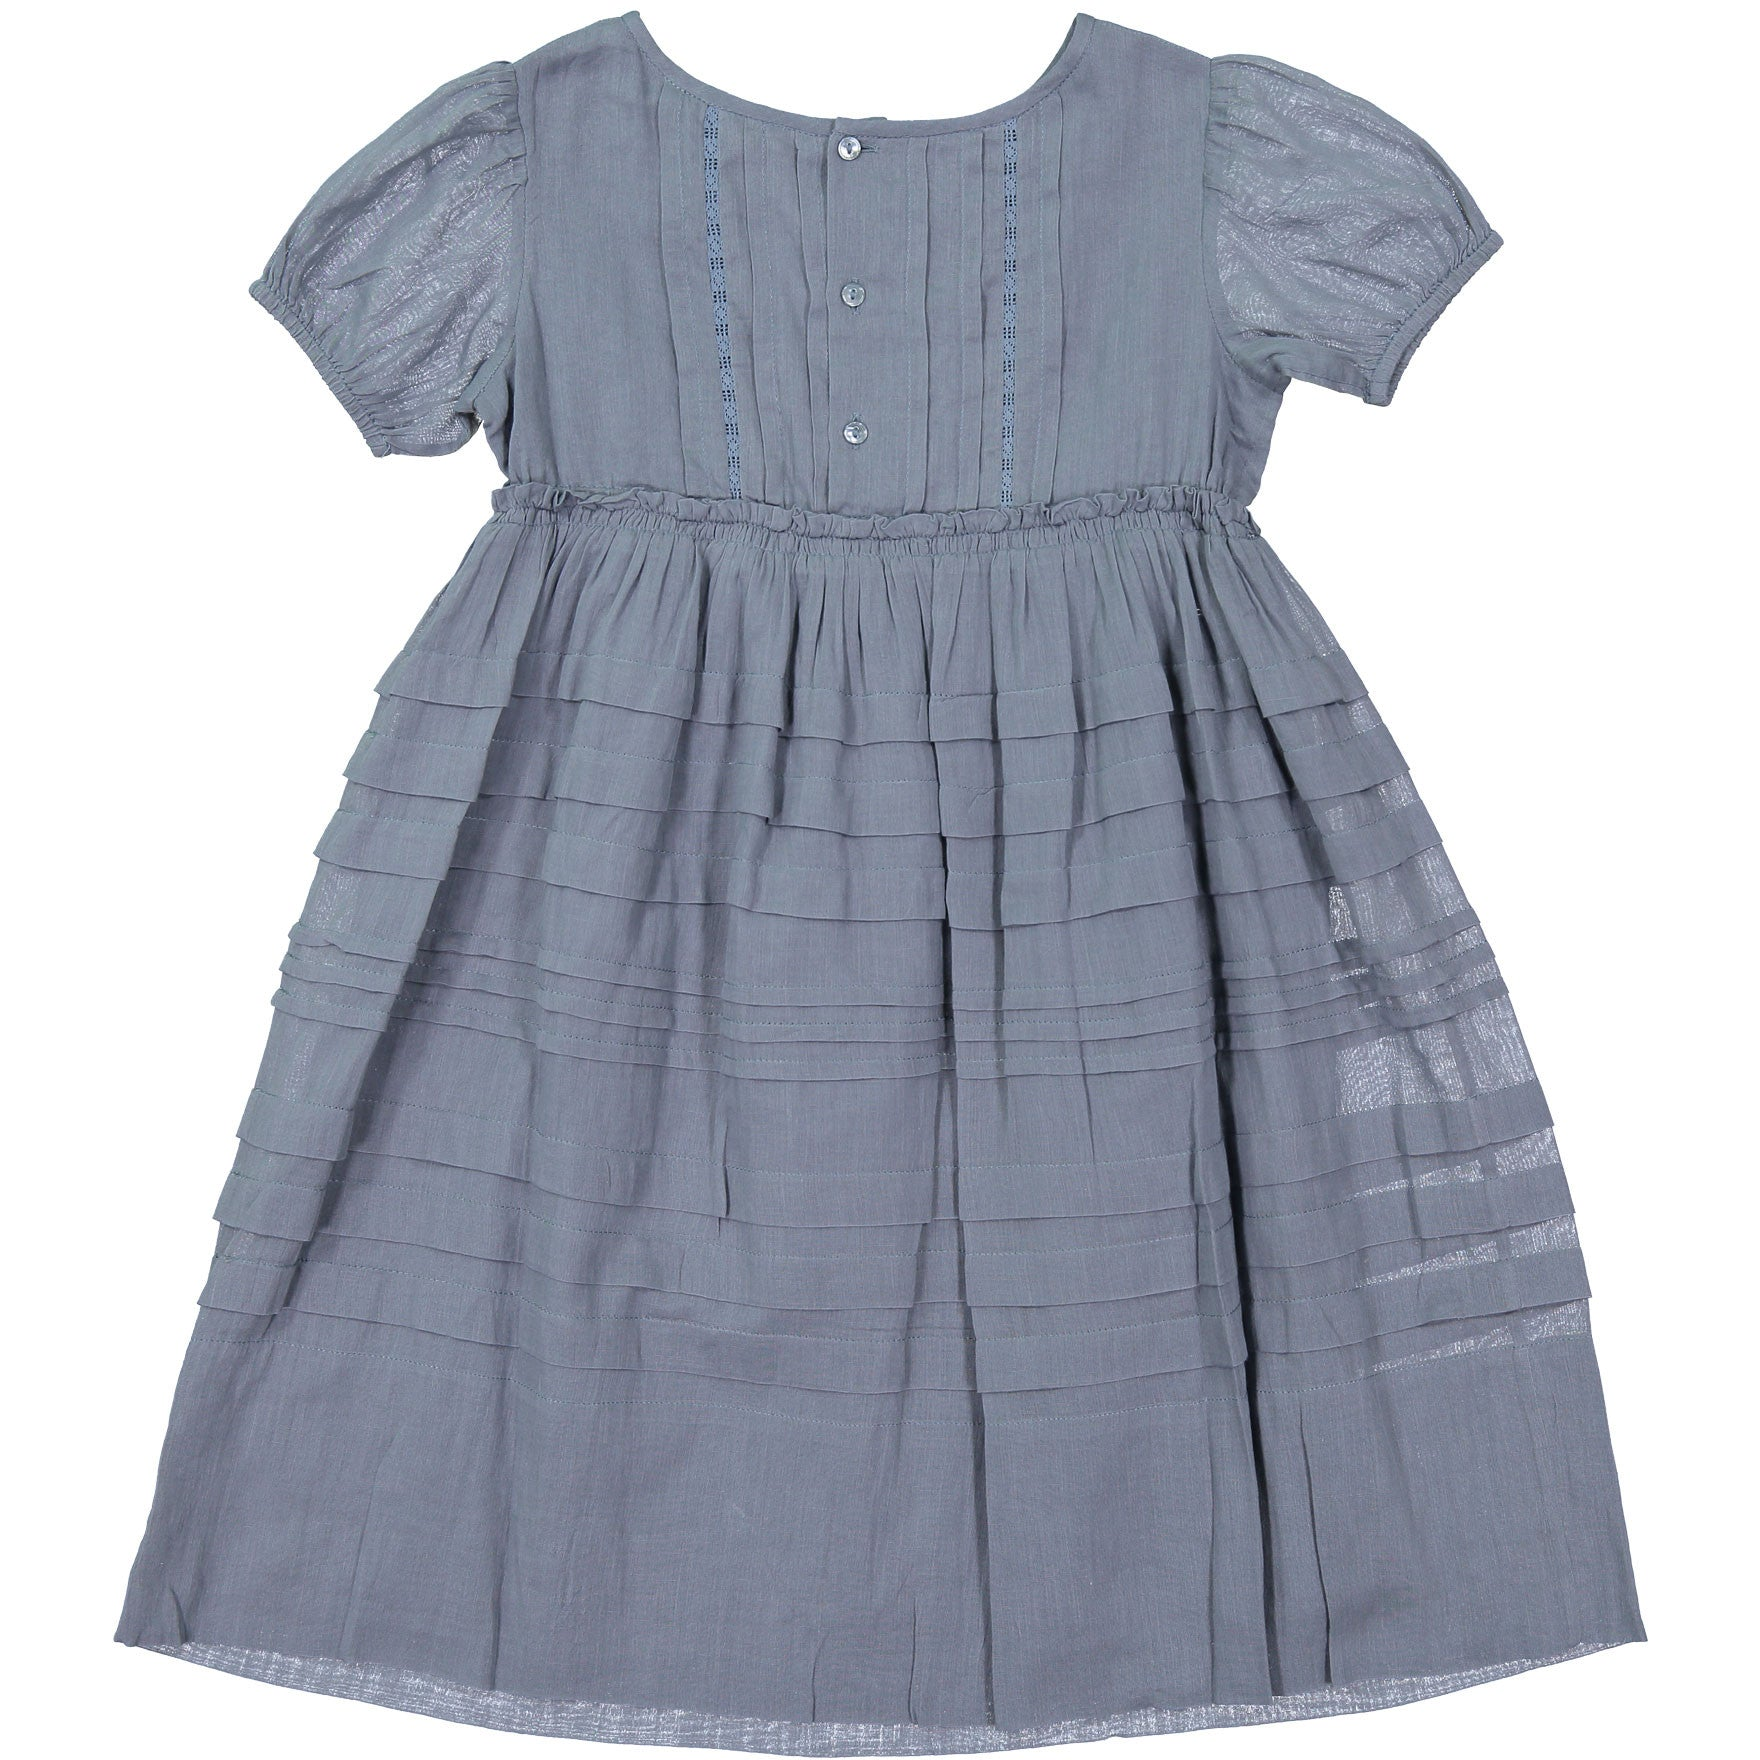 Bonpoint Slate Pleated Dress - Ladida